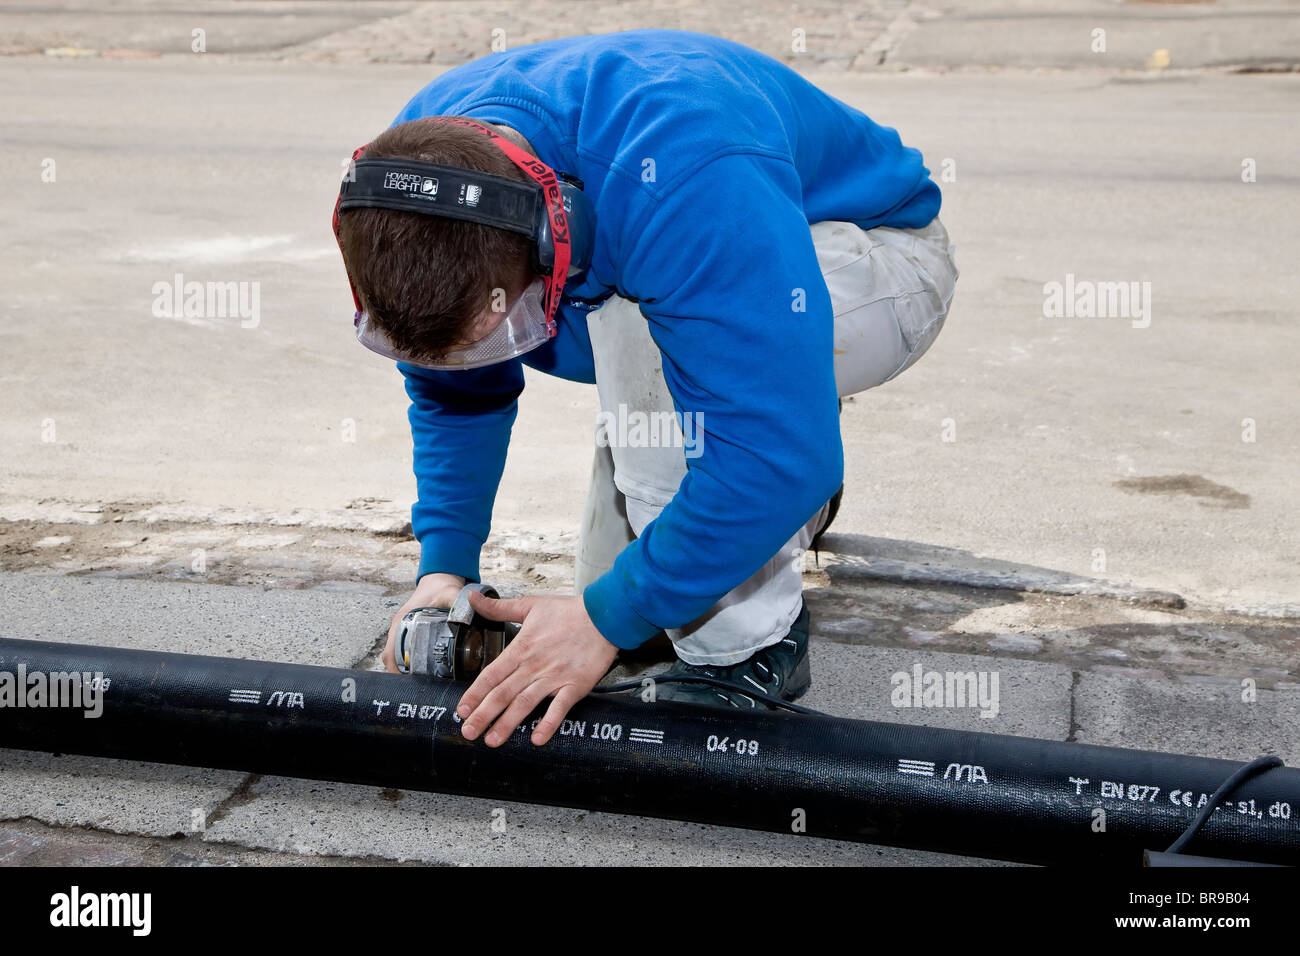 A plumber cutting a new drainpipe with an angle grinder - Stock Image